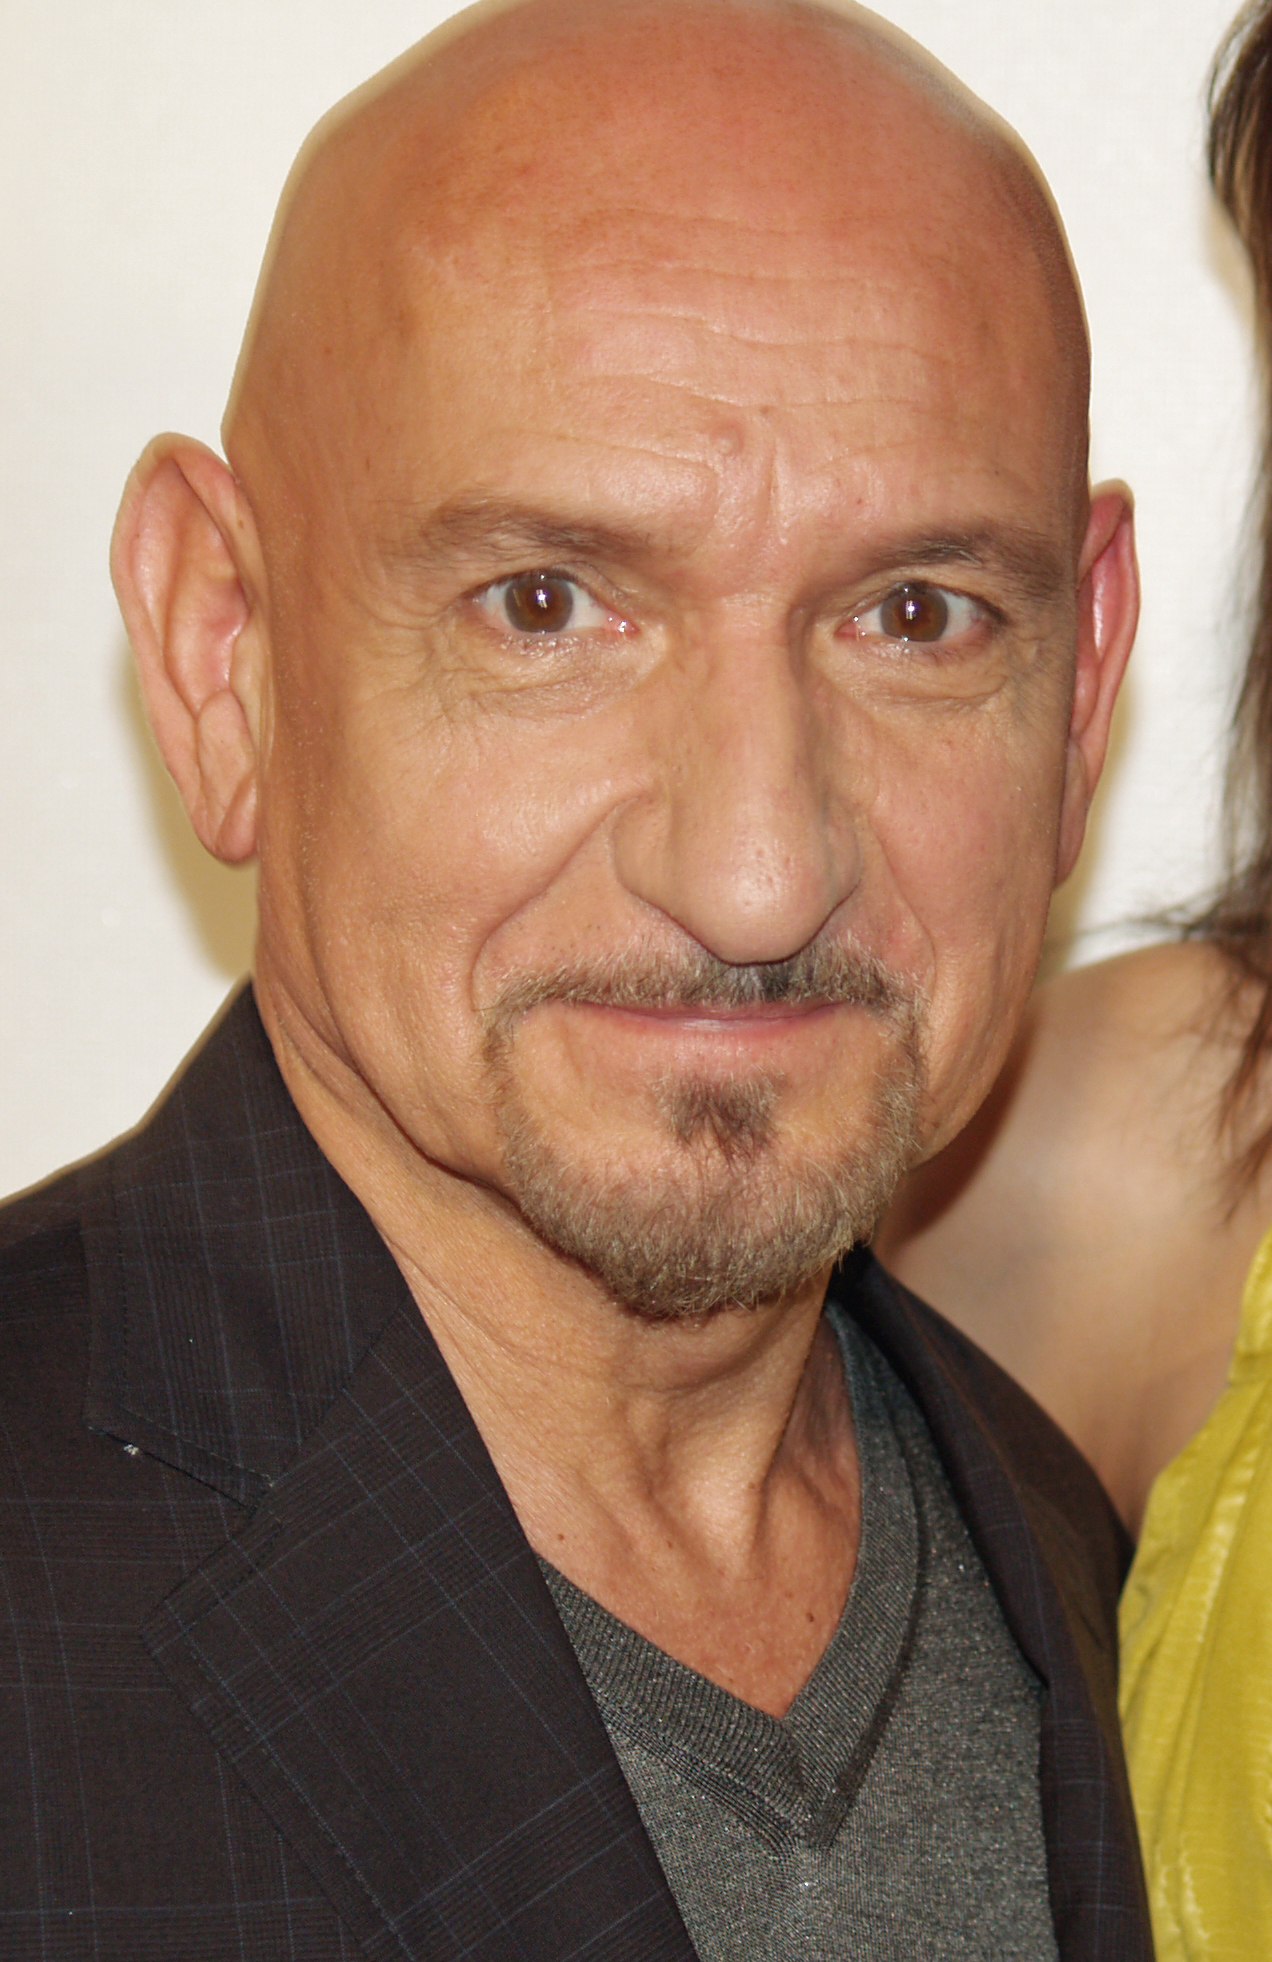 Scarborough, Yorkshire, England, UK, 1943-12-31, Ben Kingsley